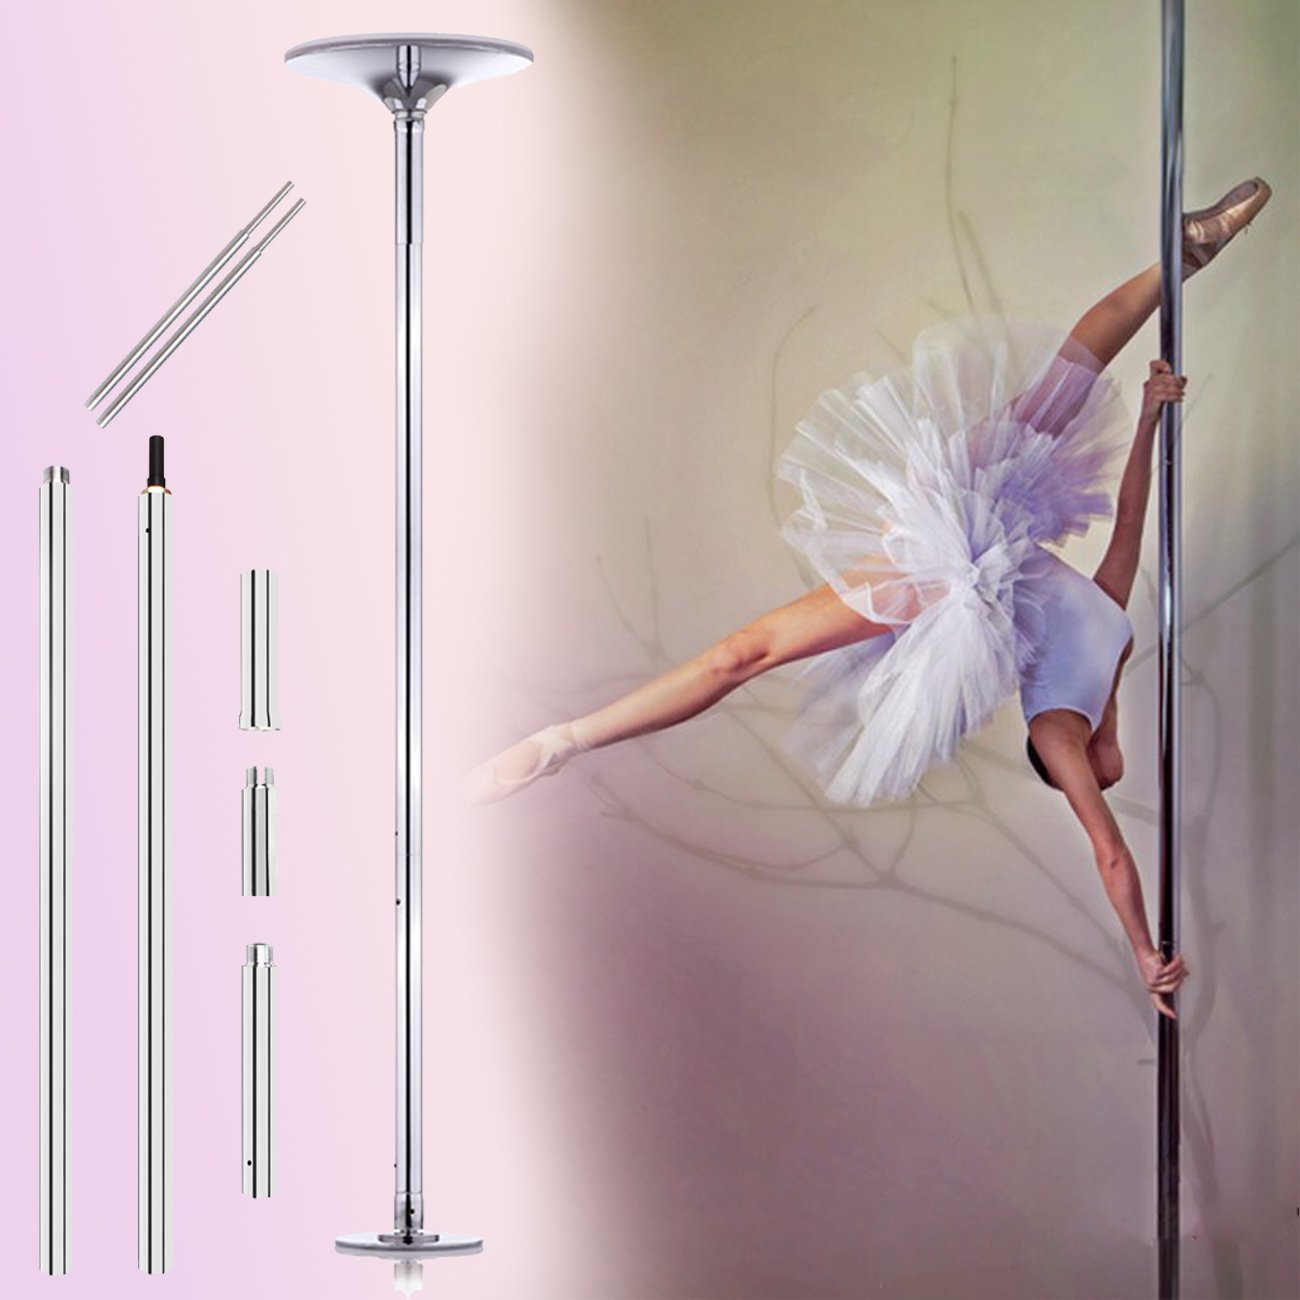 Ridgeyard 45mm Chrome Spinning / Static Portable Dance Pole Exotic Stripper Spinning Fitness Exercise Weight Loss Professional Kit Extendable from 2235mm (7'4'') to 2745mm (9')+ Instructional DVD by Ridgeyard